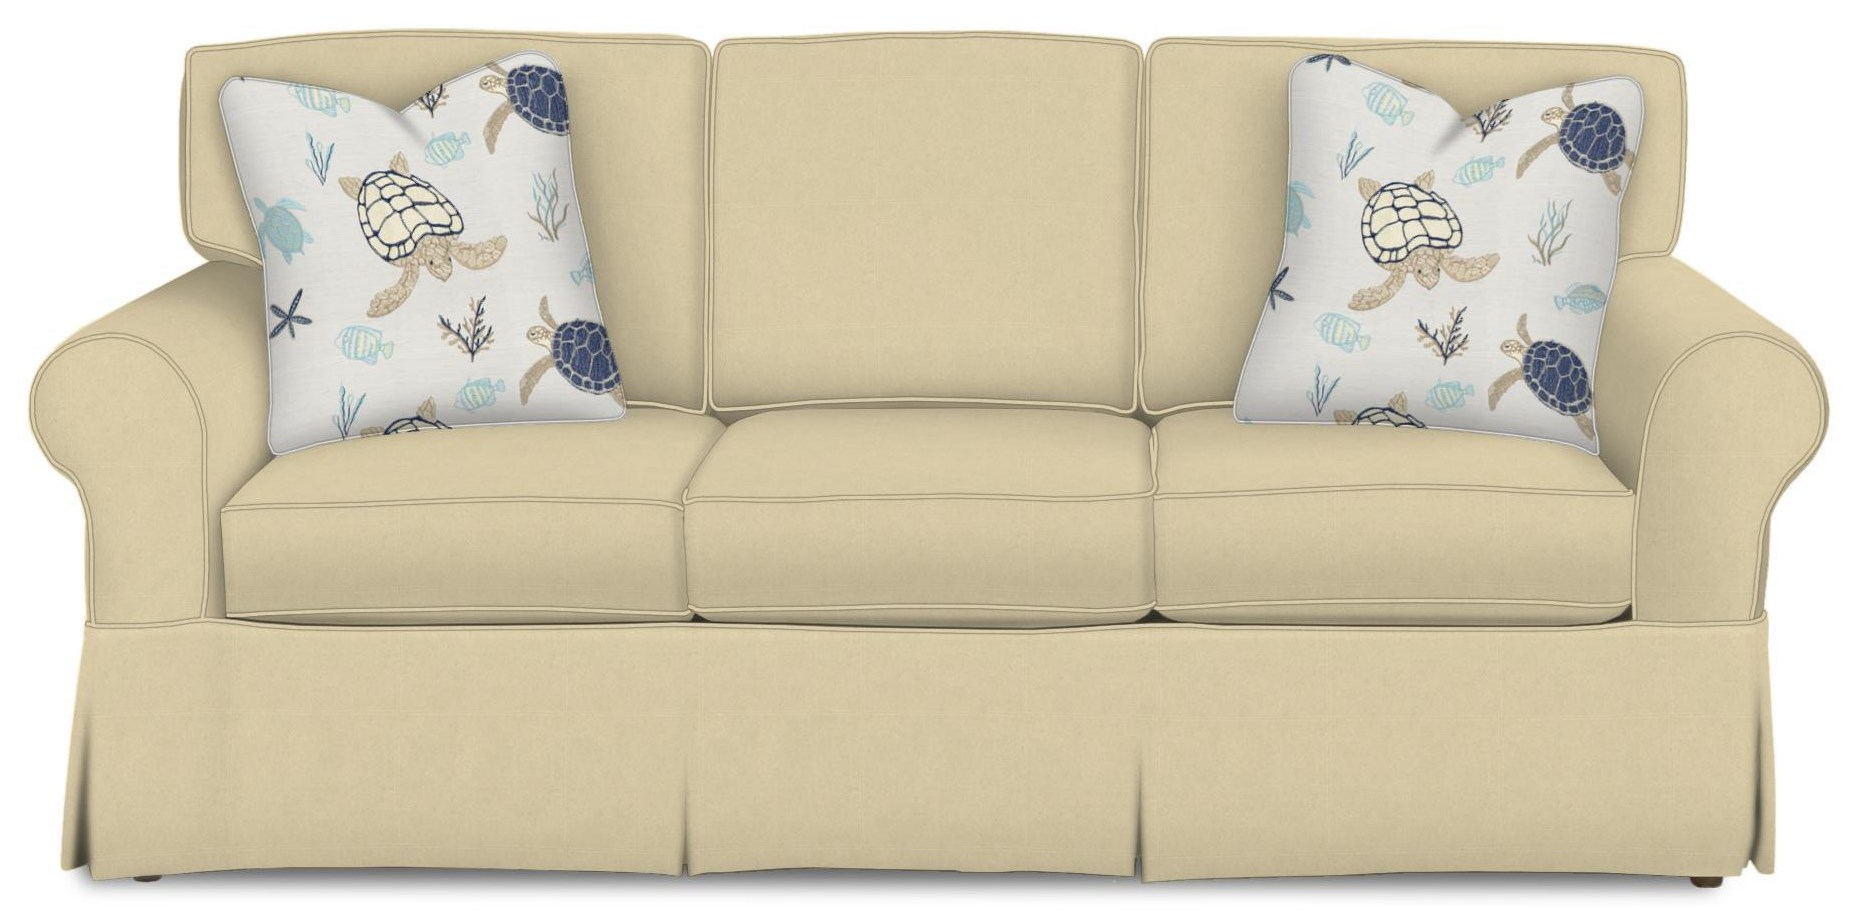 922950BD Sofa by Craftmaster at Esprit Decor Home Furnishings